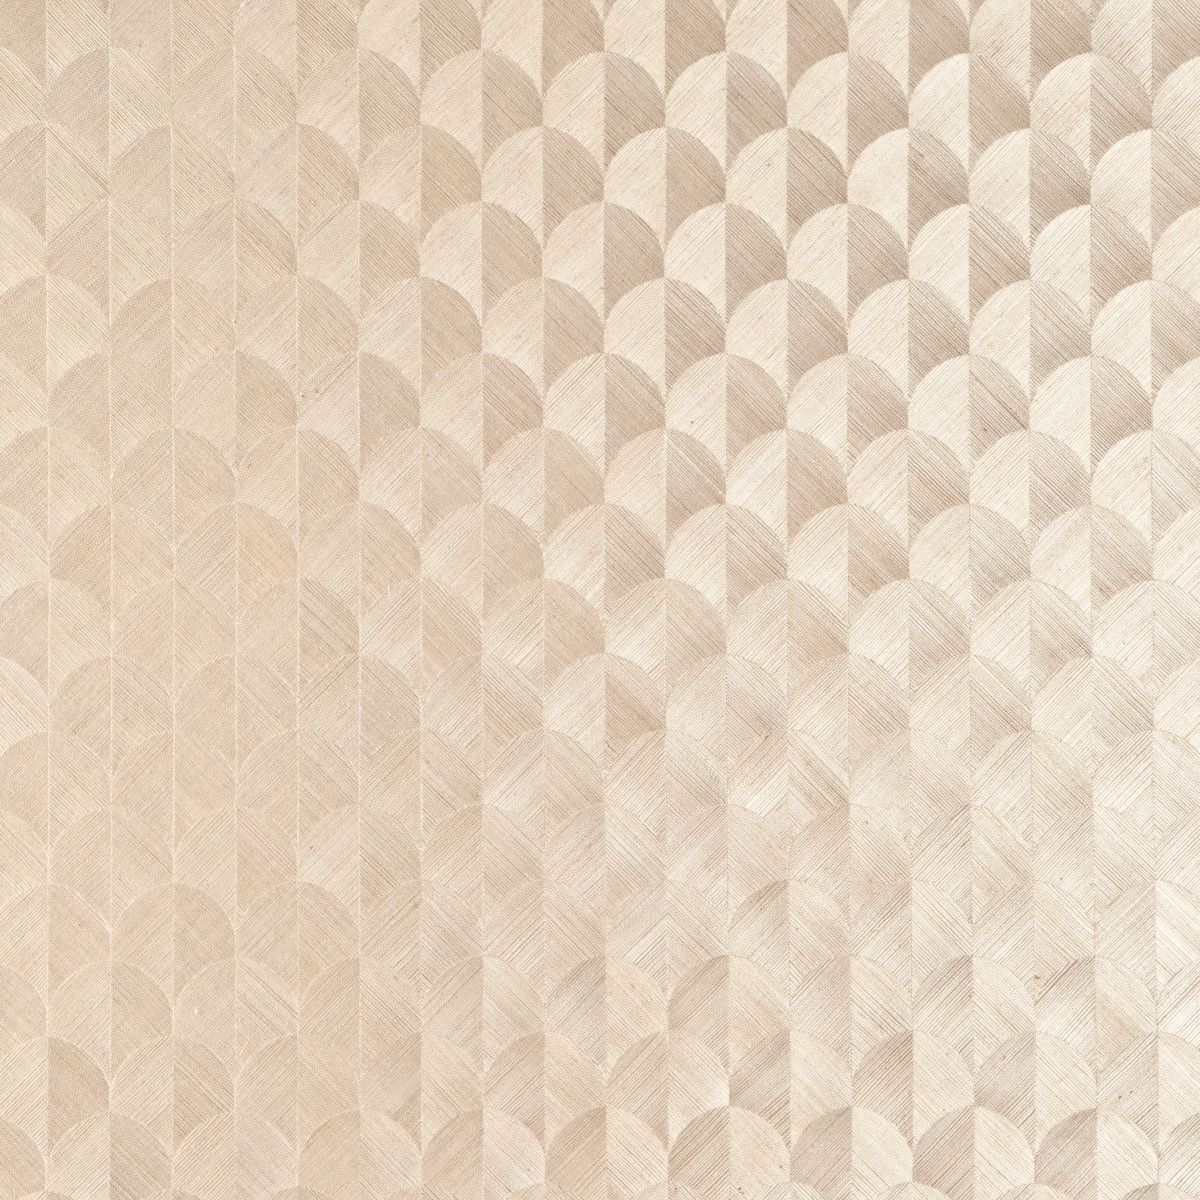 Decowunder Wallpapers Non Woven Sisal Wallpaper Scale